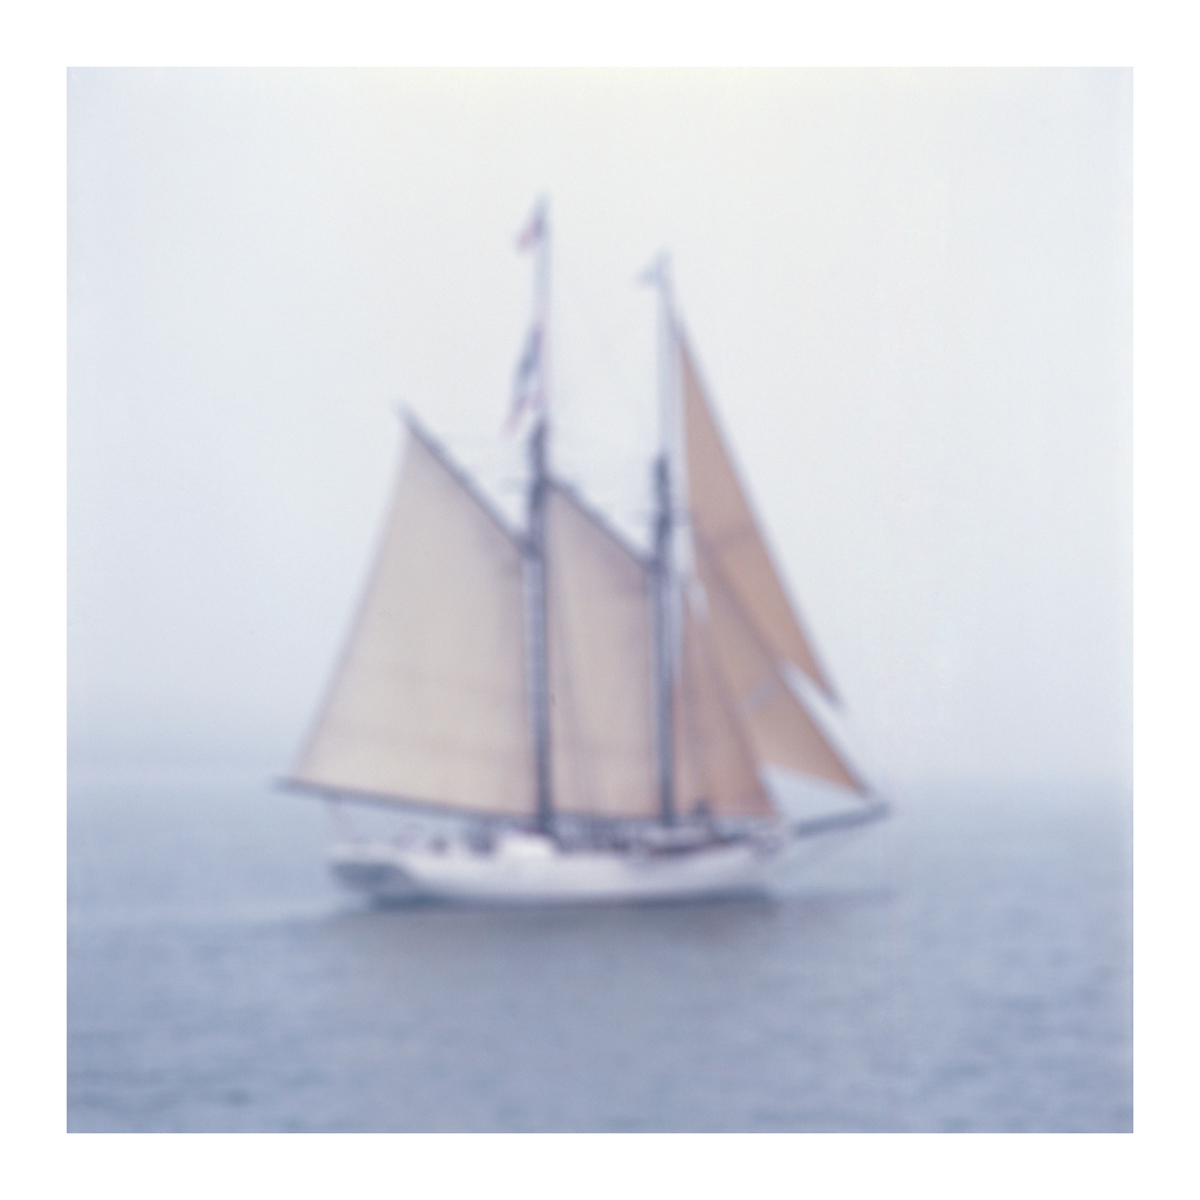 Yawl, Vineyard Sound, Massachusetts, 2011